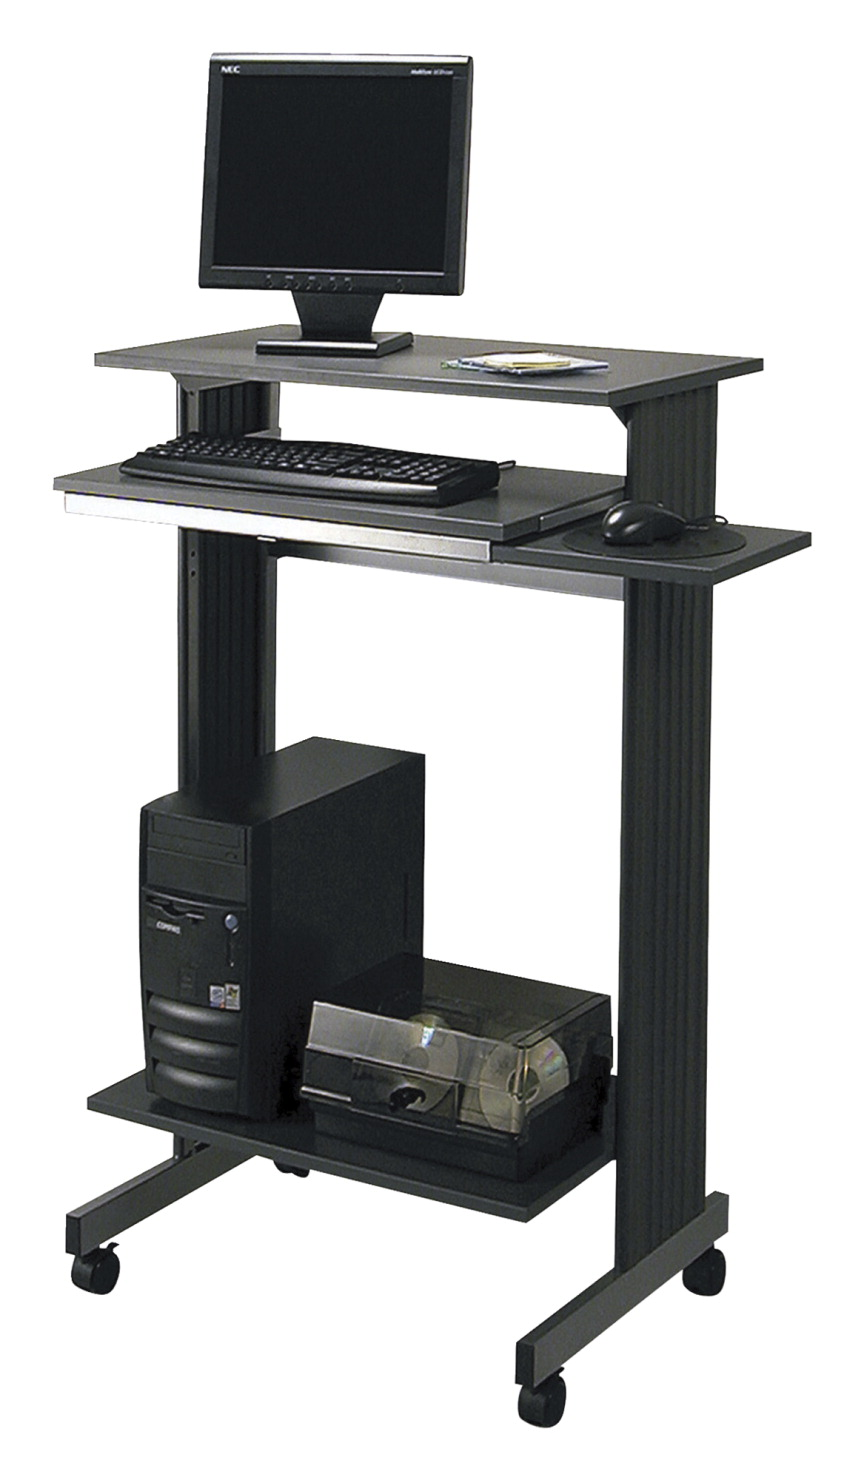 Buddy Euroflex Stand-Up Workstation, Charcoal and Silver 29-1/2 W x 19-5/8 D x 44-1/4 H Inches